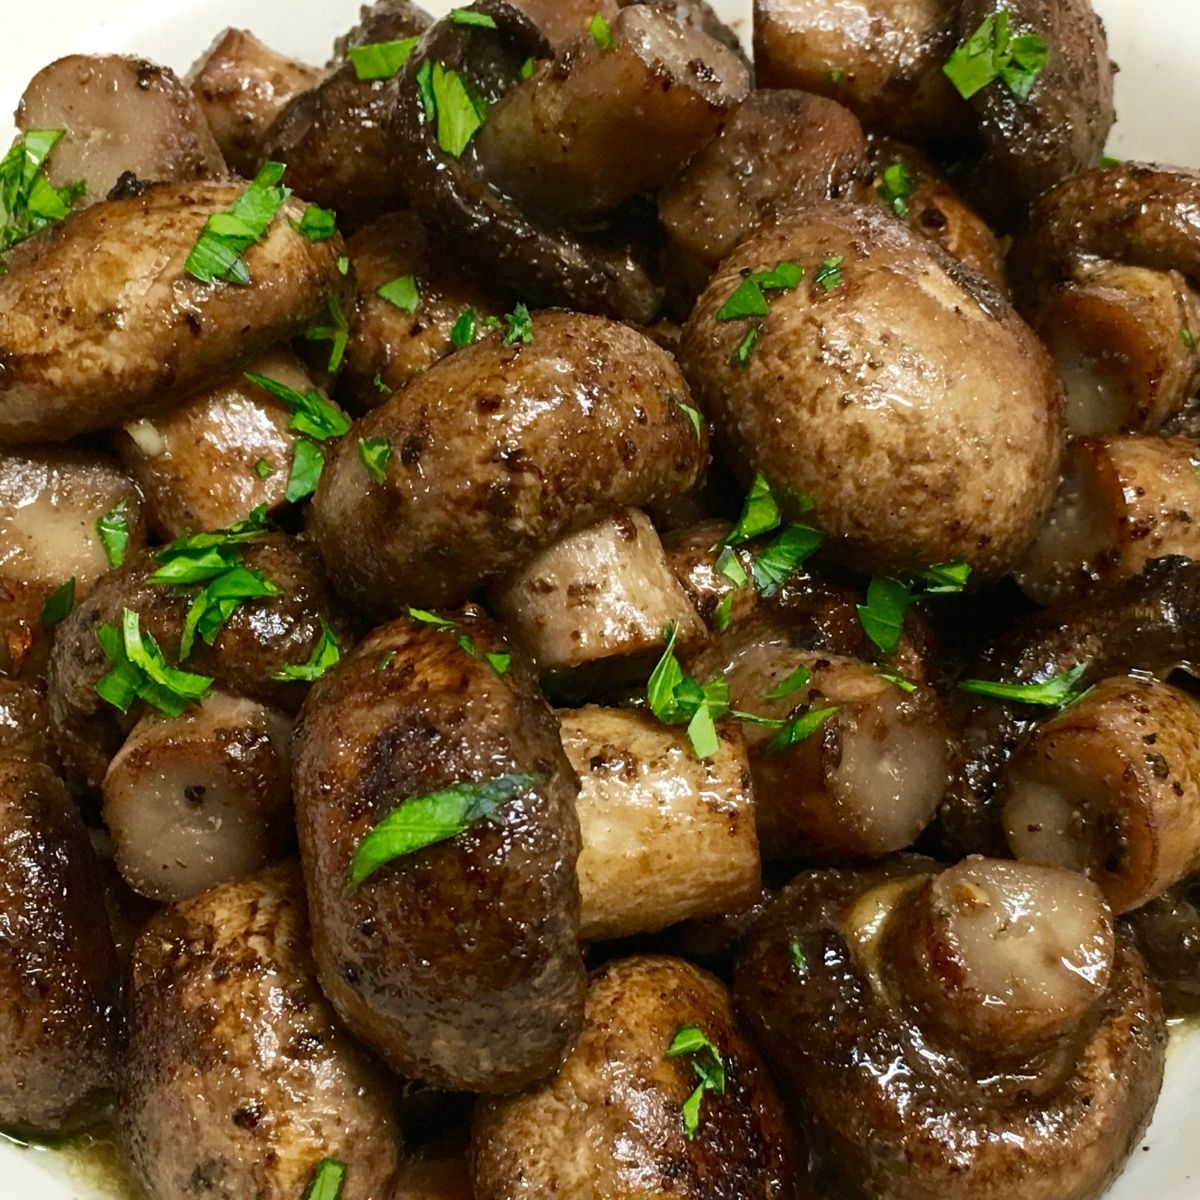 Recipe for Sautéed Mushrooms with minced parsley